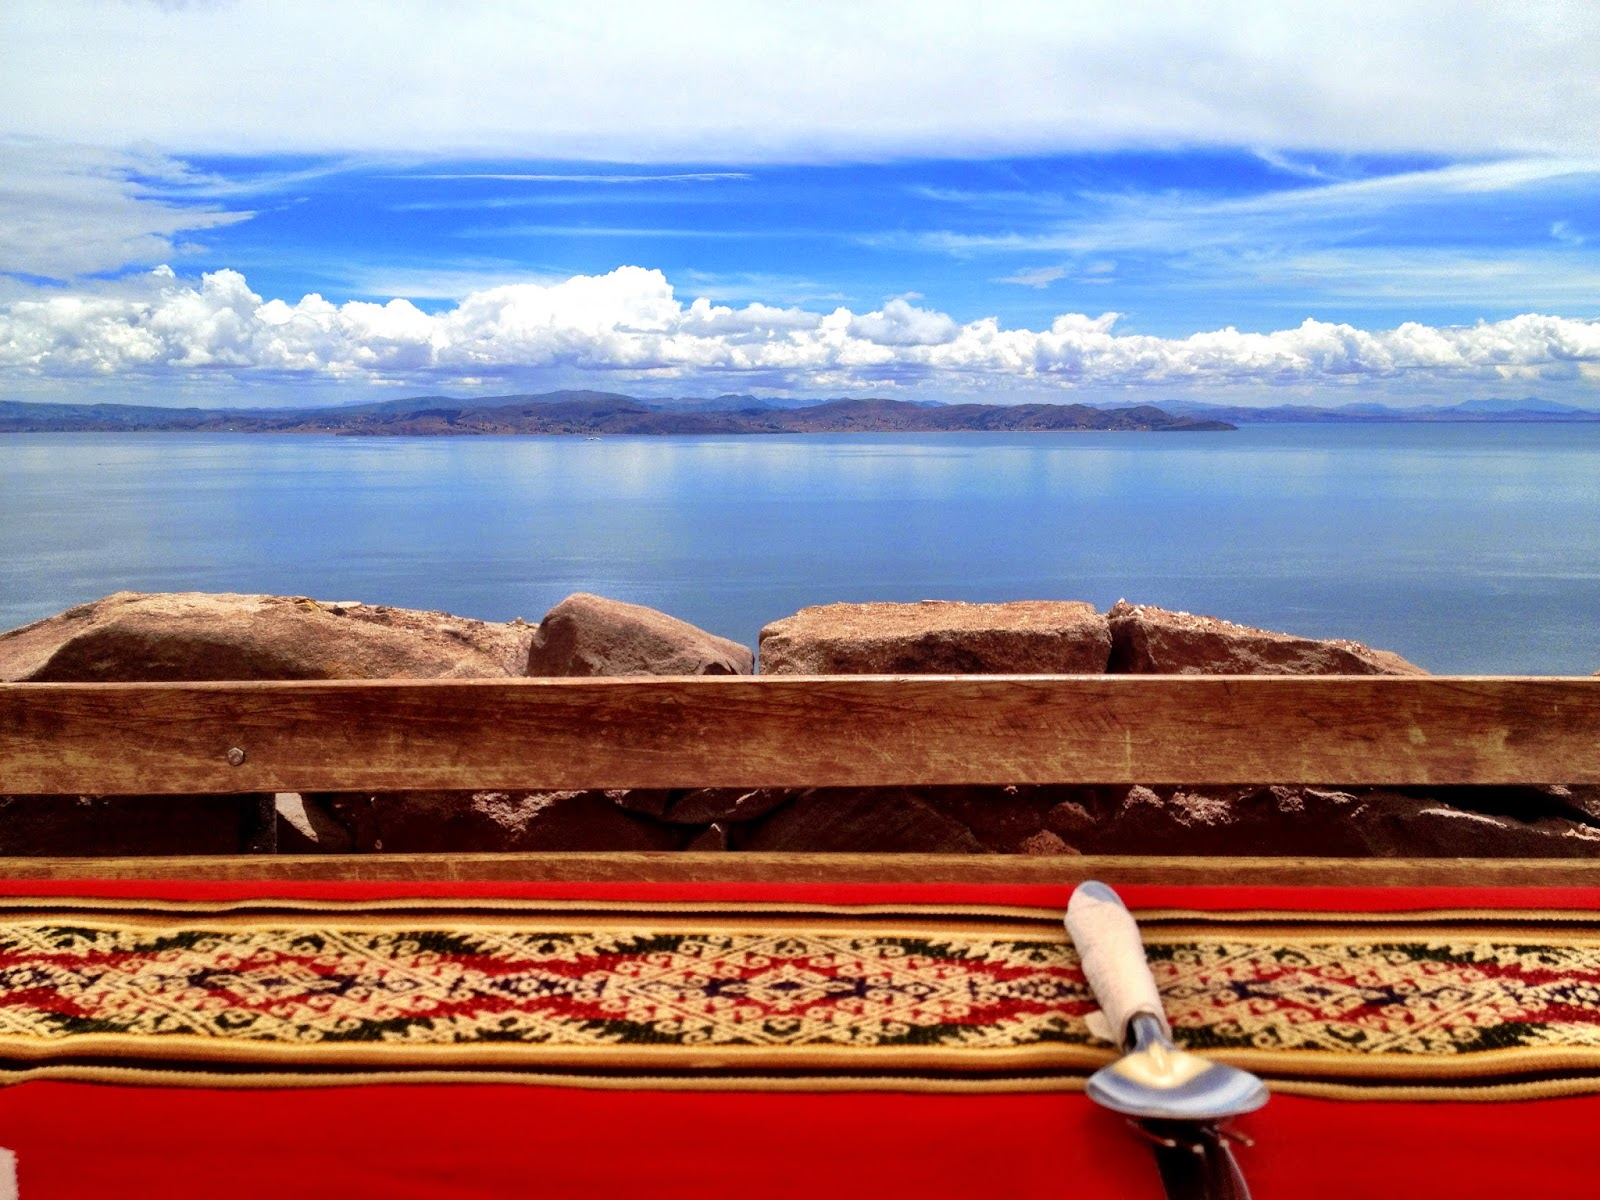 Lunch view on Taquile Island - Lake Titicaca, Peru